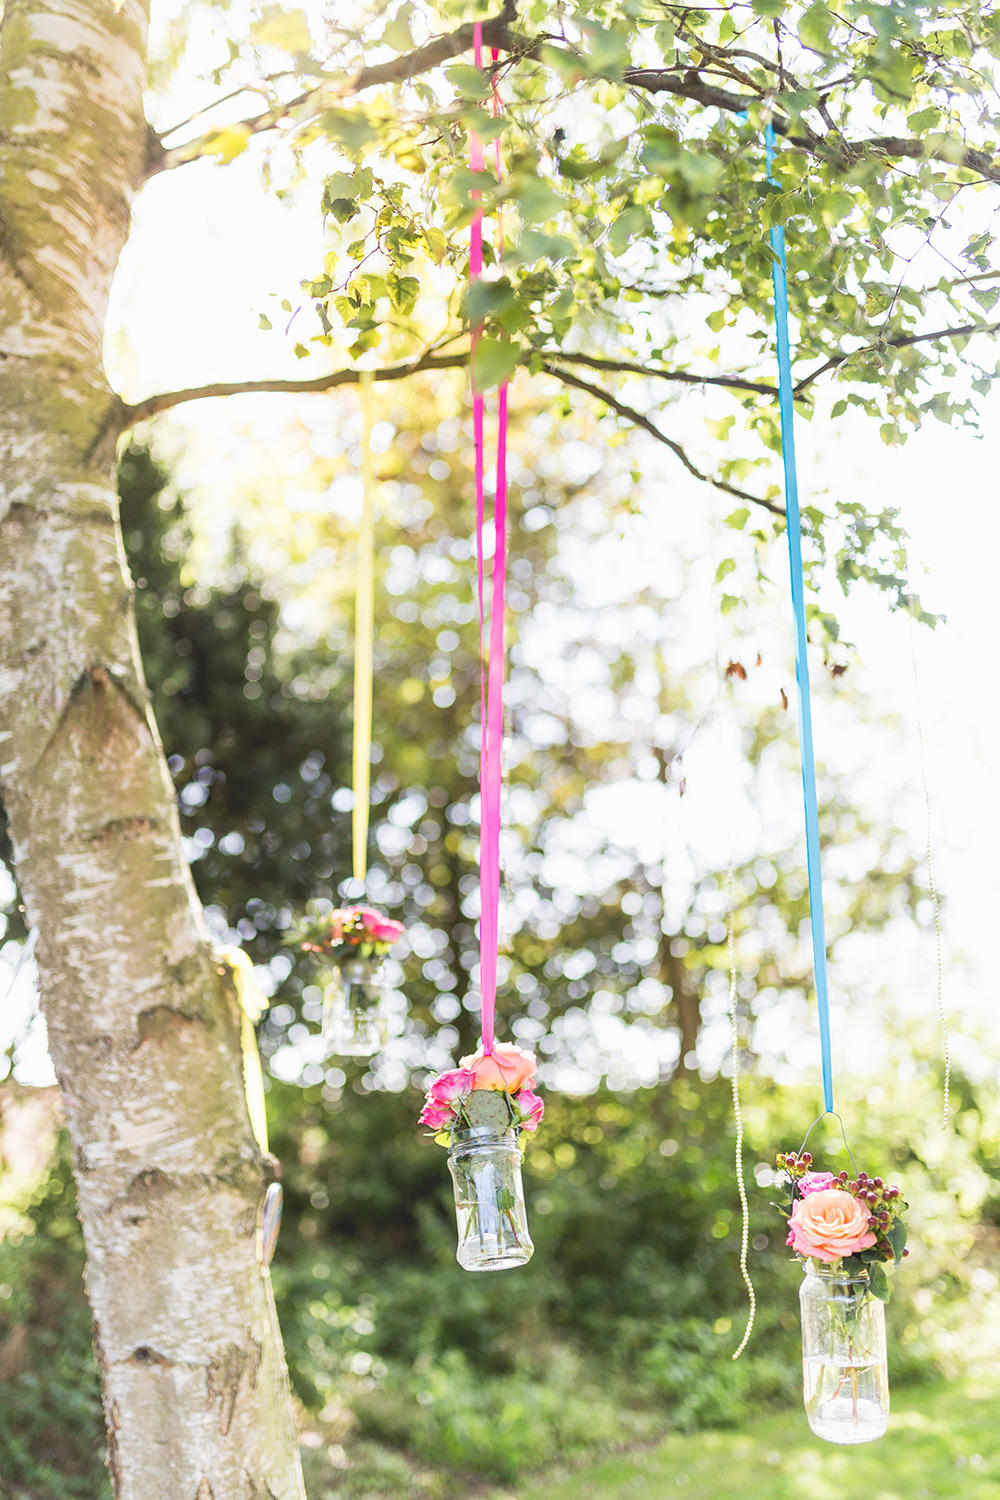 Hanging Jar Flowers Ribbons Colourful Hothorpe Hall Woodlands Wedding Lucy Long Photography